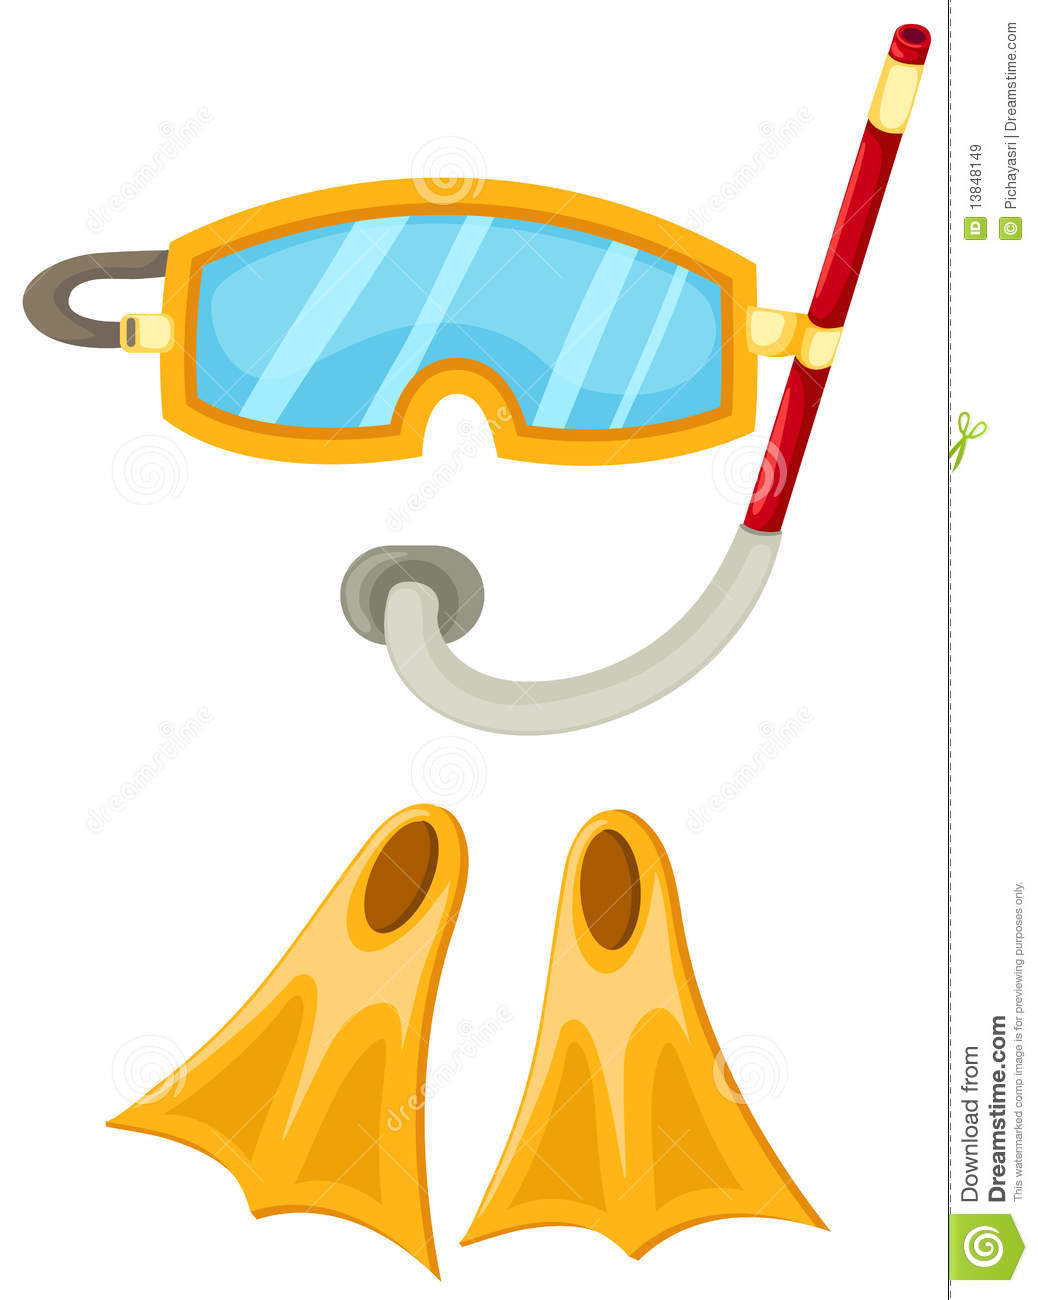 1038x1300 Collection Of Scuba Diving Gear Clipart High Quality, Free